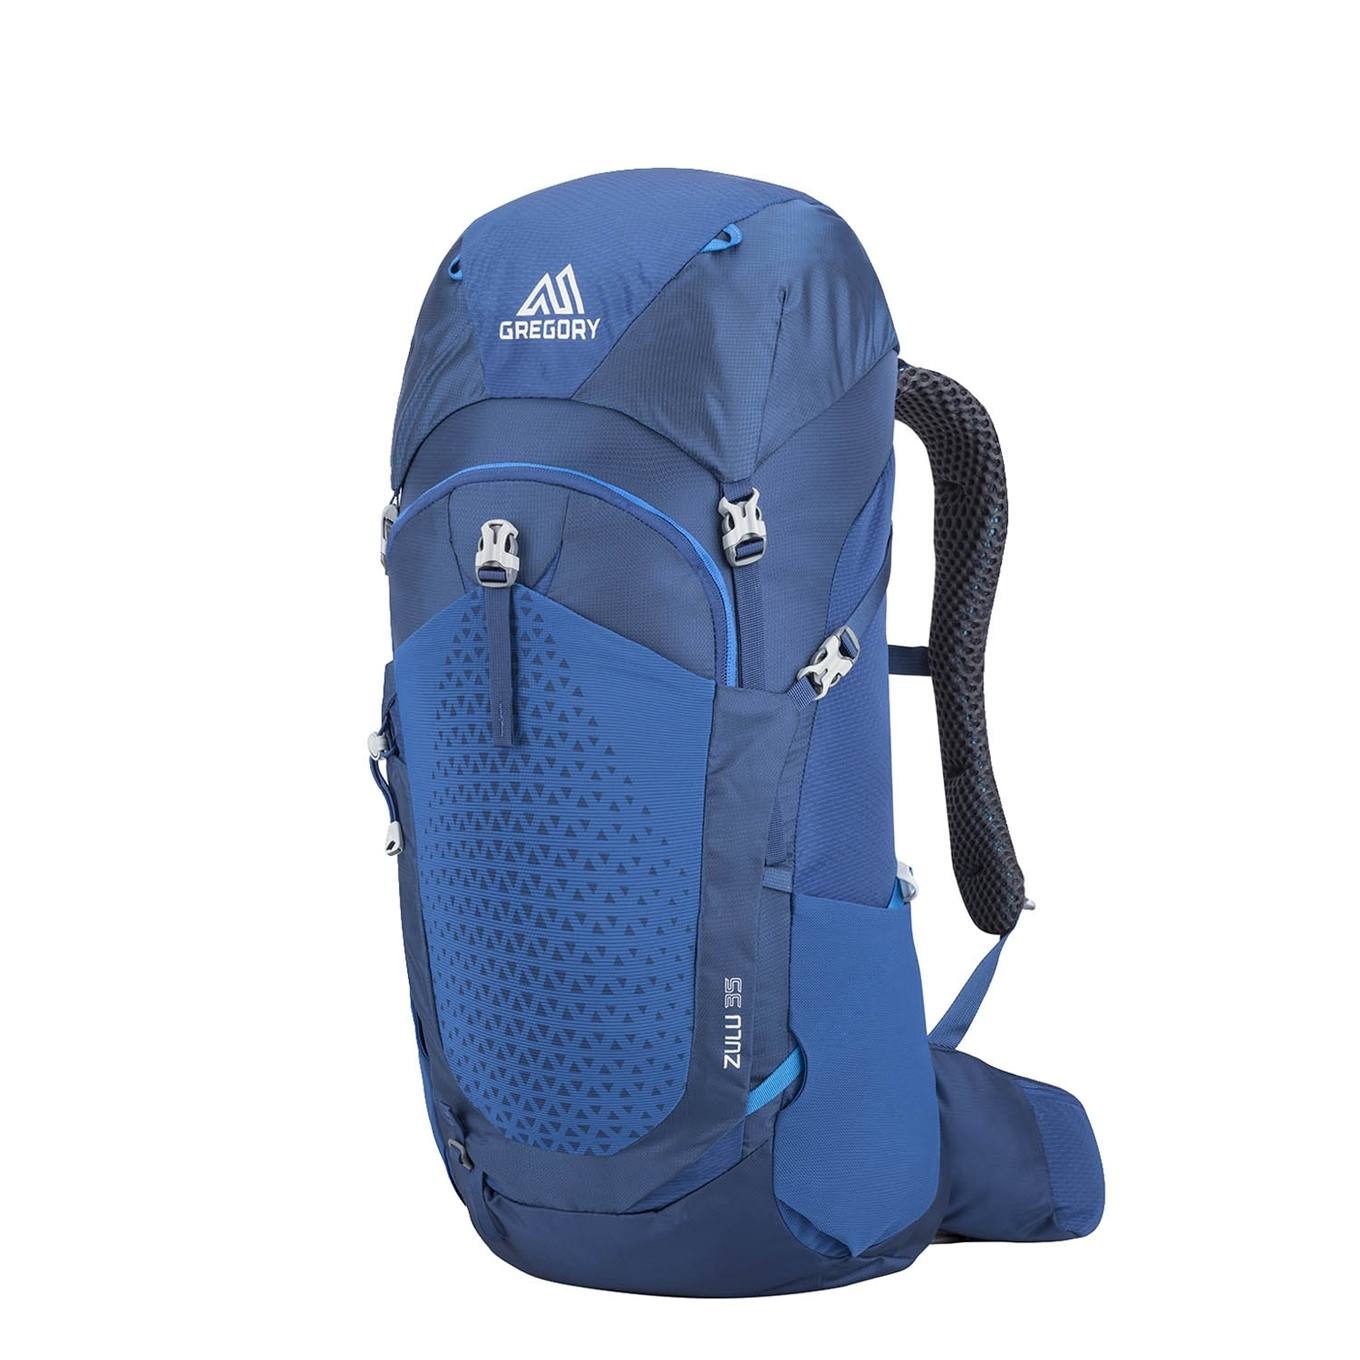 Gregory Zulu 40L Backpack M/L empire blue backpack <br/></noscript><img class=